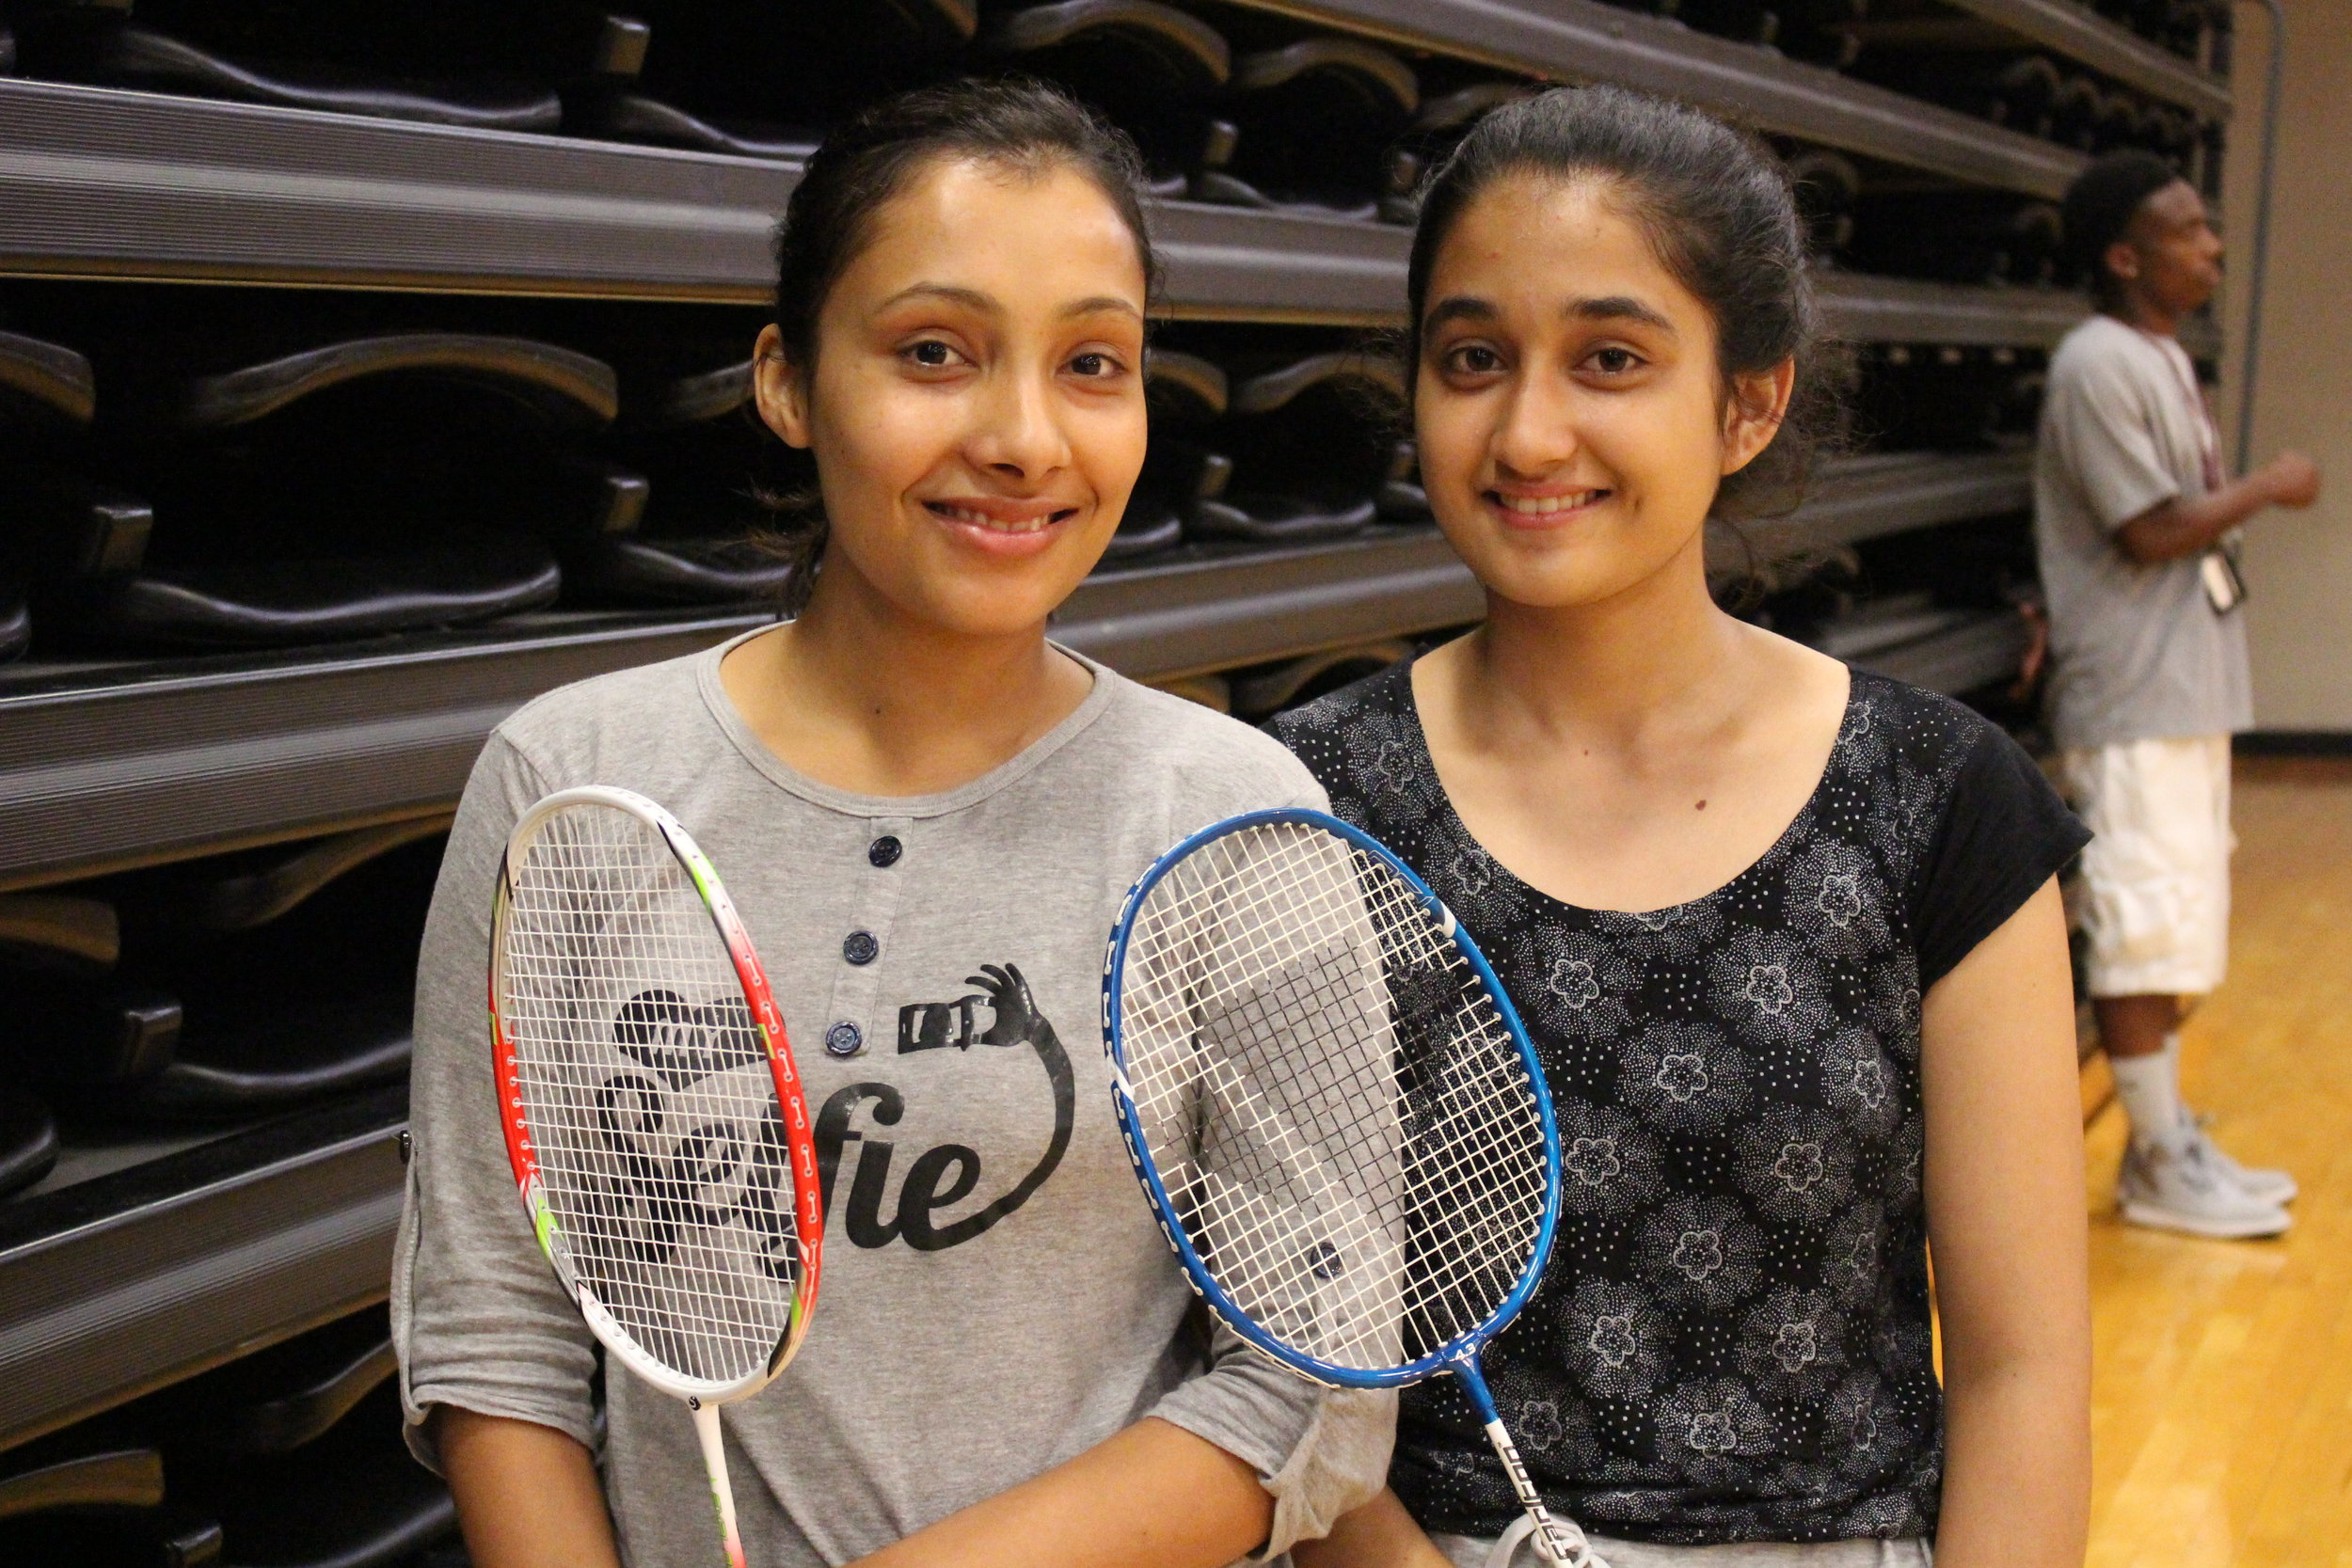 Mahima Acharya and Anugya Shiwakoti show off their rackets for the badminton tournament. Photo by Casandra Anderson.